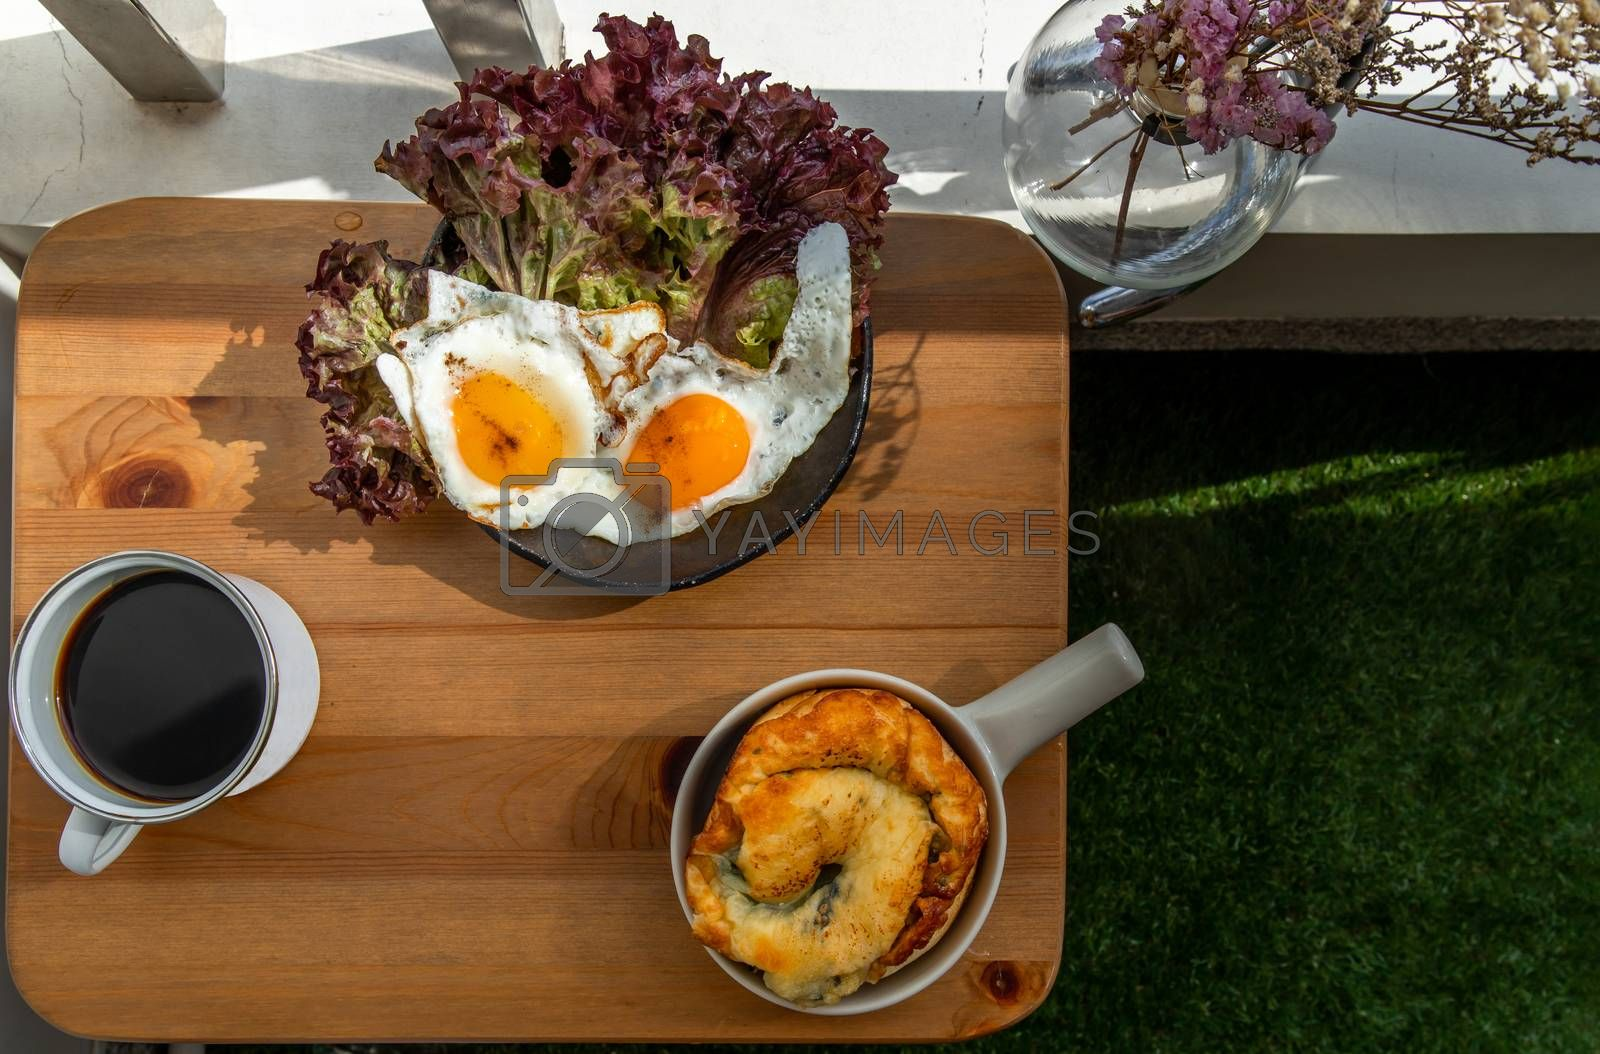 Breakfast with Spinach brioche, Two fried eggs, Oak Leaf lettuce served with Black coffee on wooden table at balcony. Selective focuse.